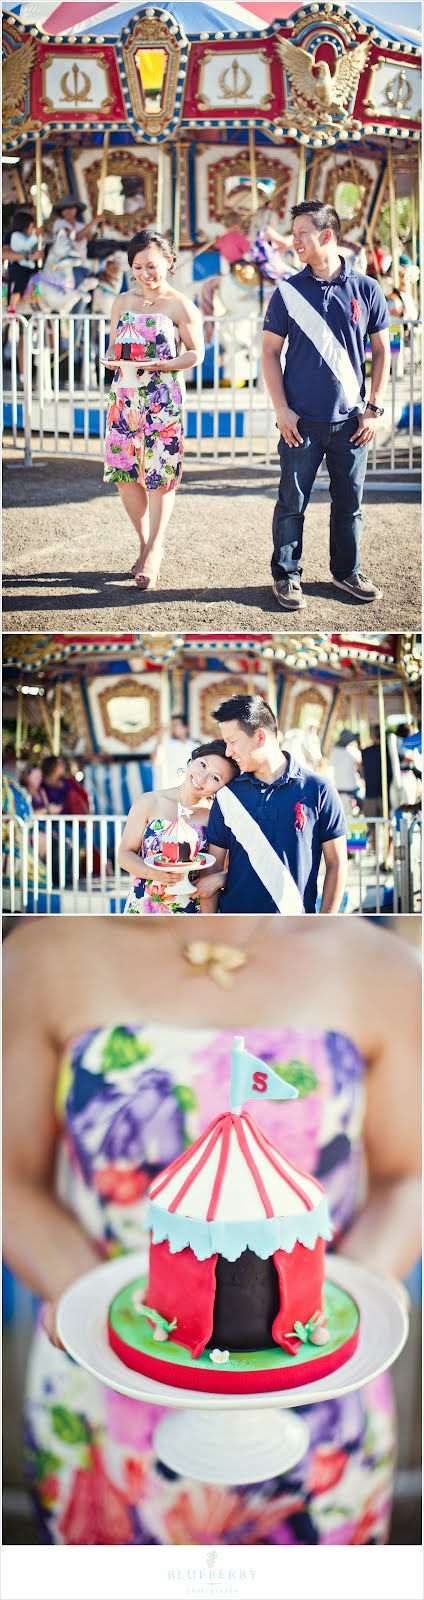 Marin County Fair engagement photos. So much fun!